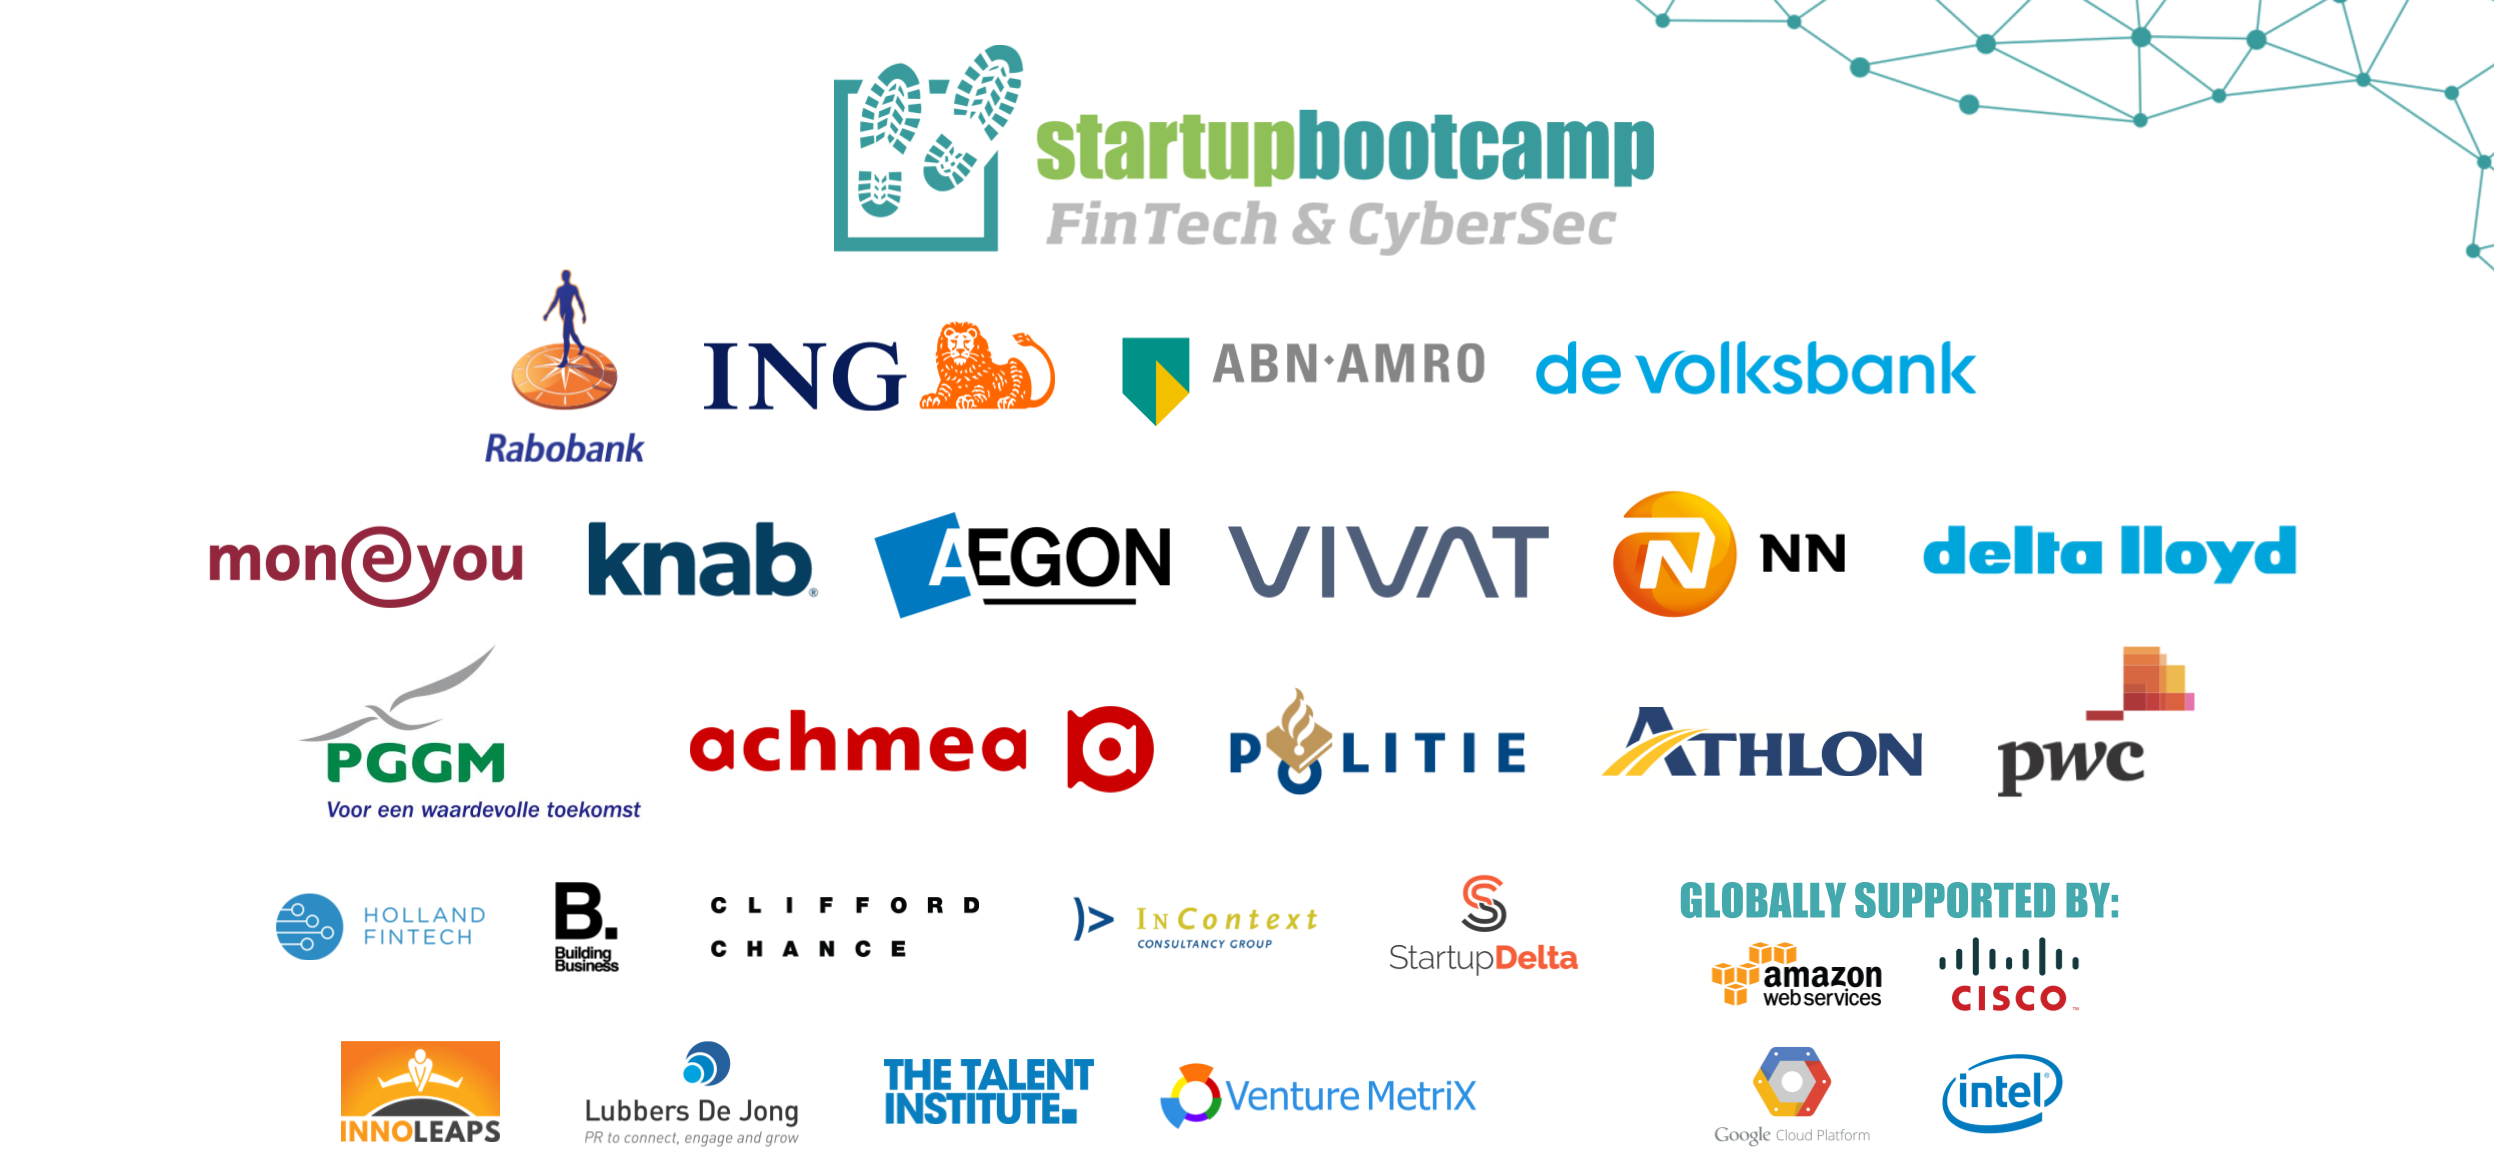 Startupbootcamp FinTech & CyberSecurity Partners